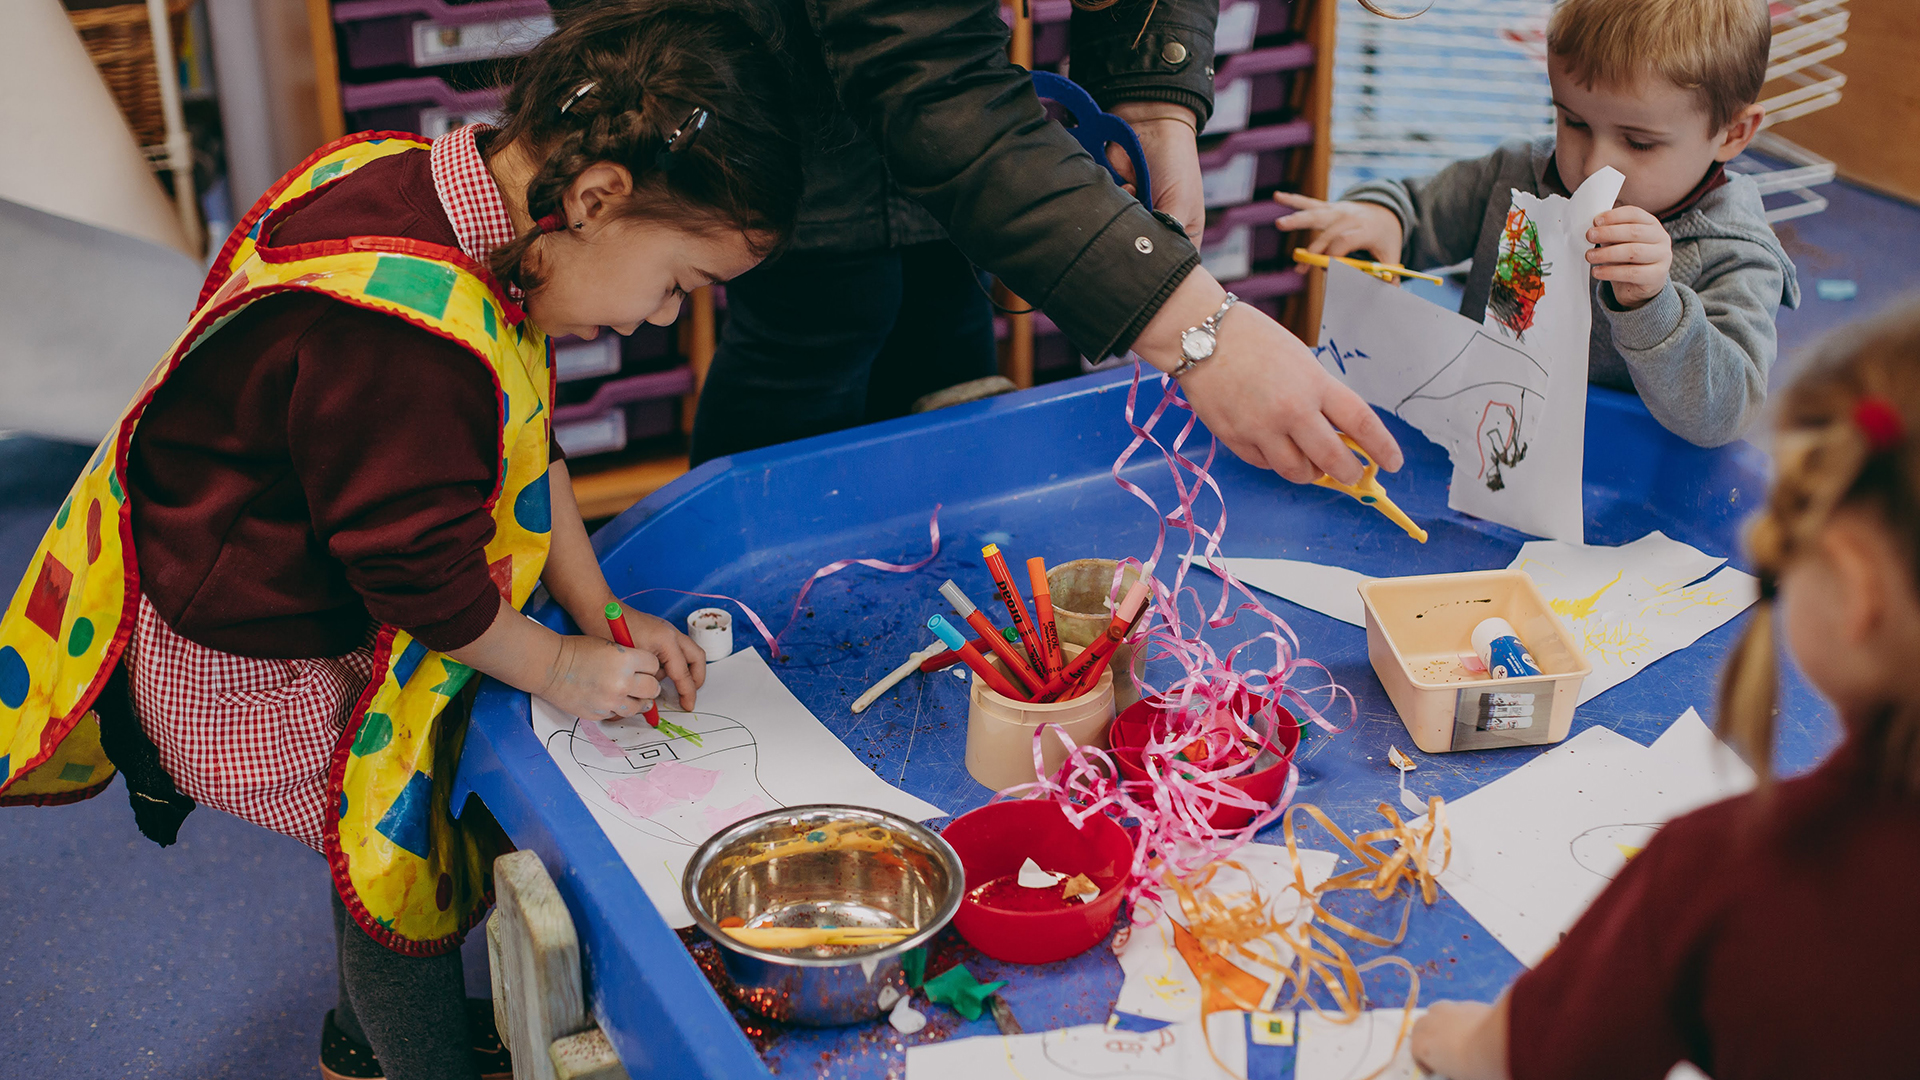 Photo of children colouring at table